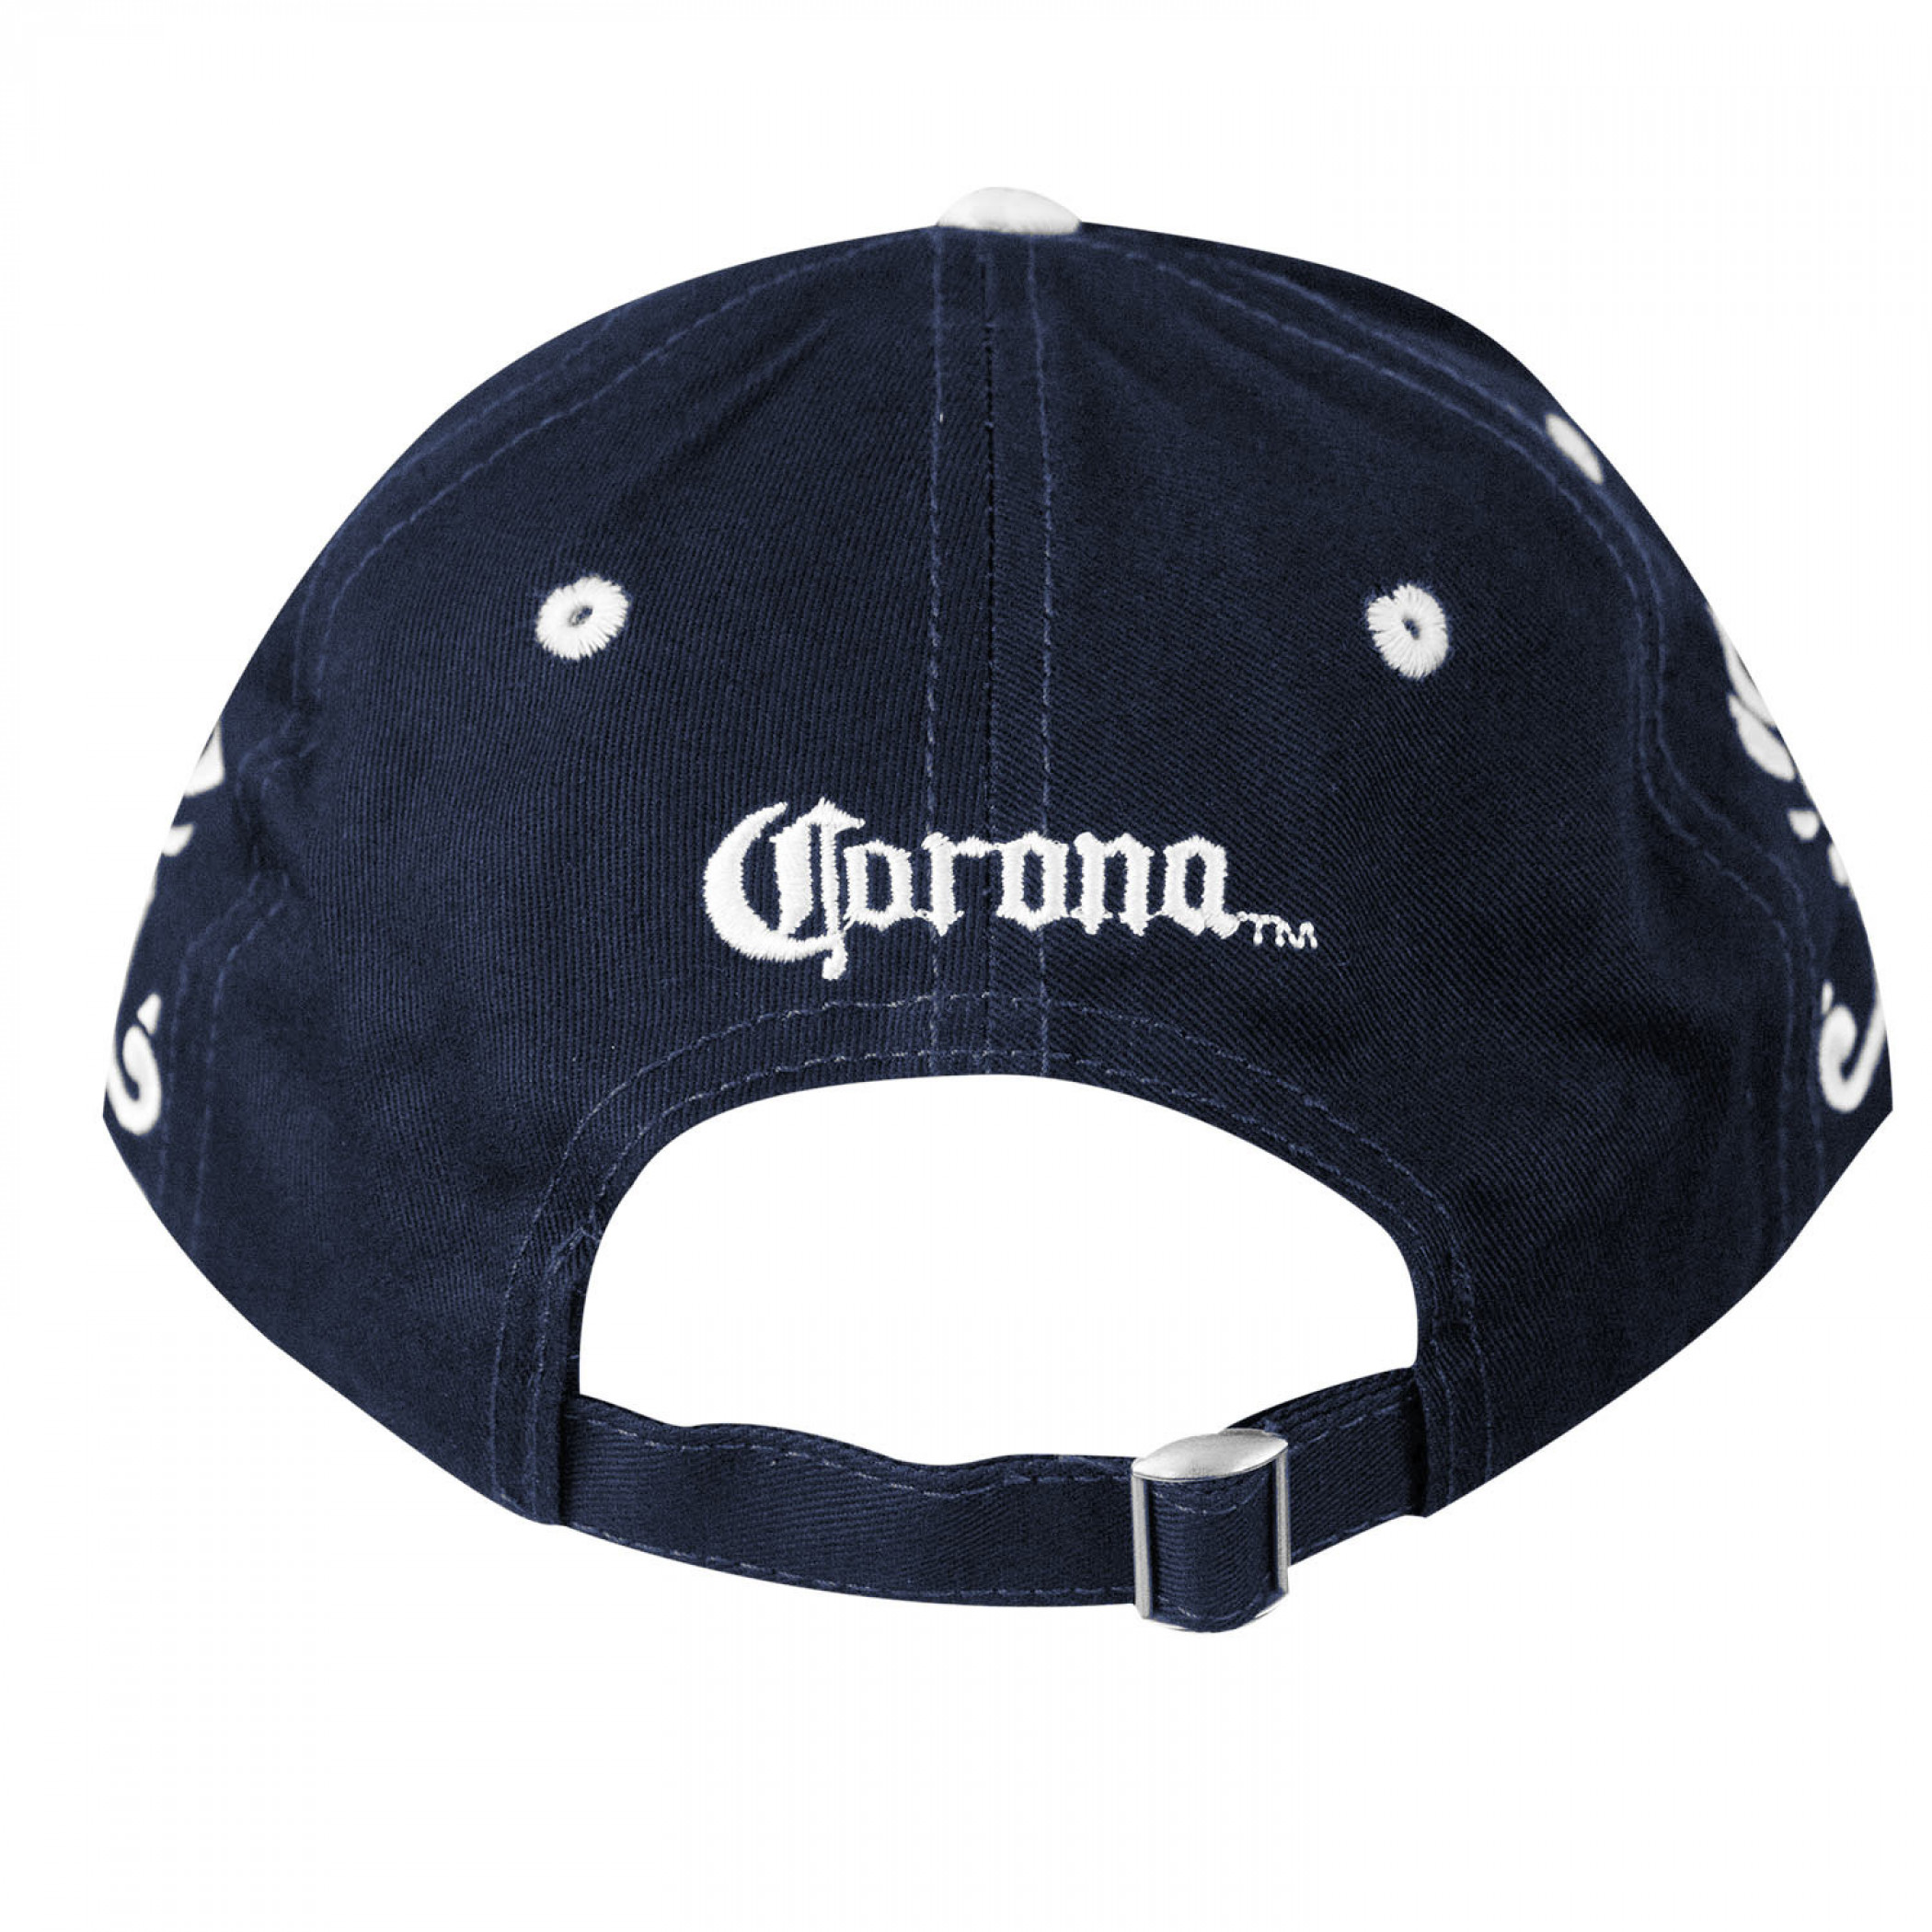 Corona Crown Logo Men's Hat